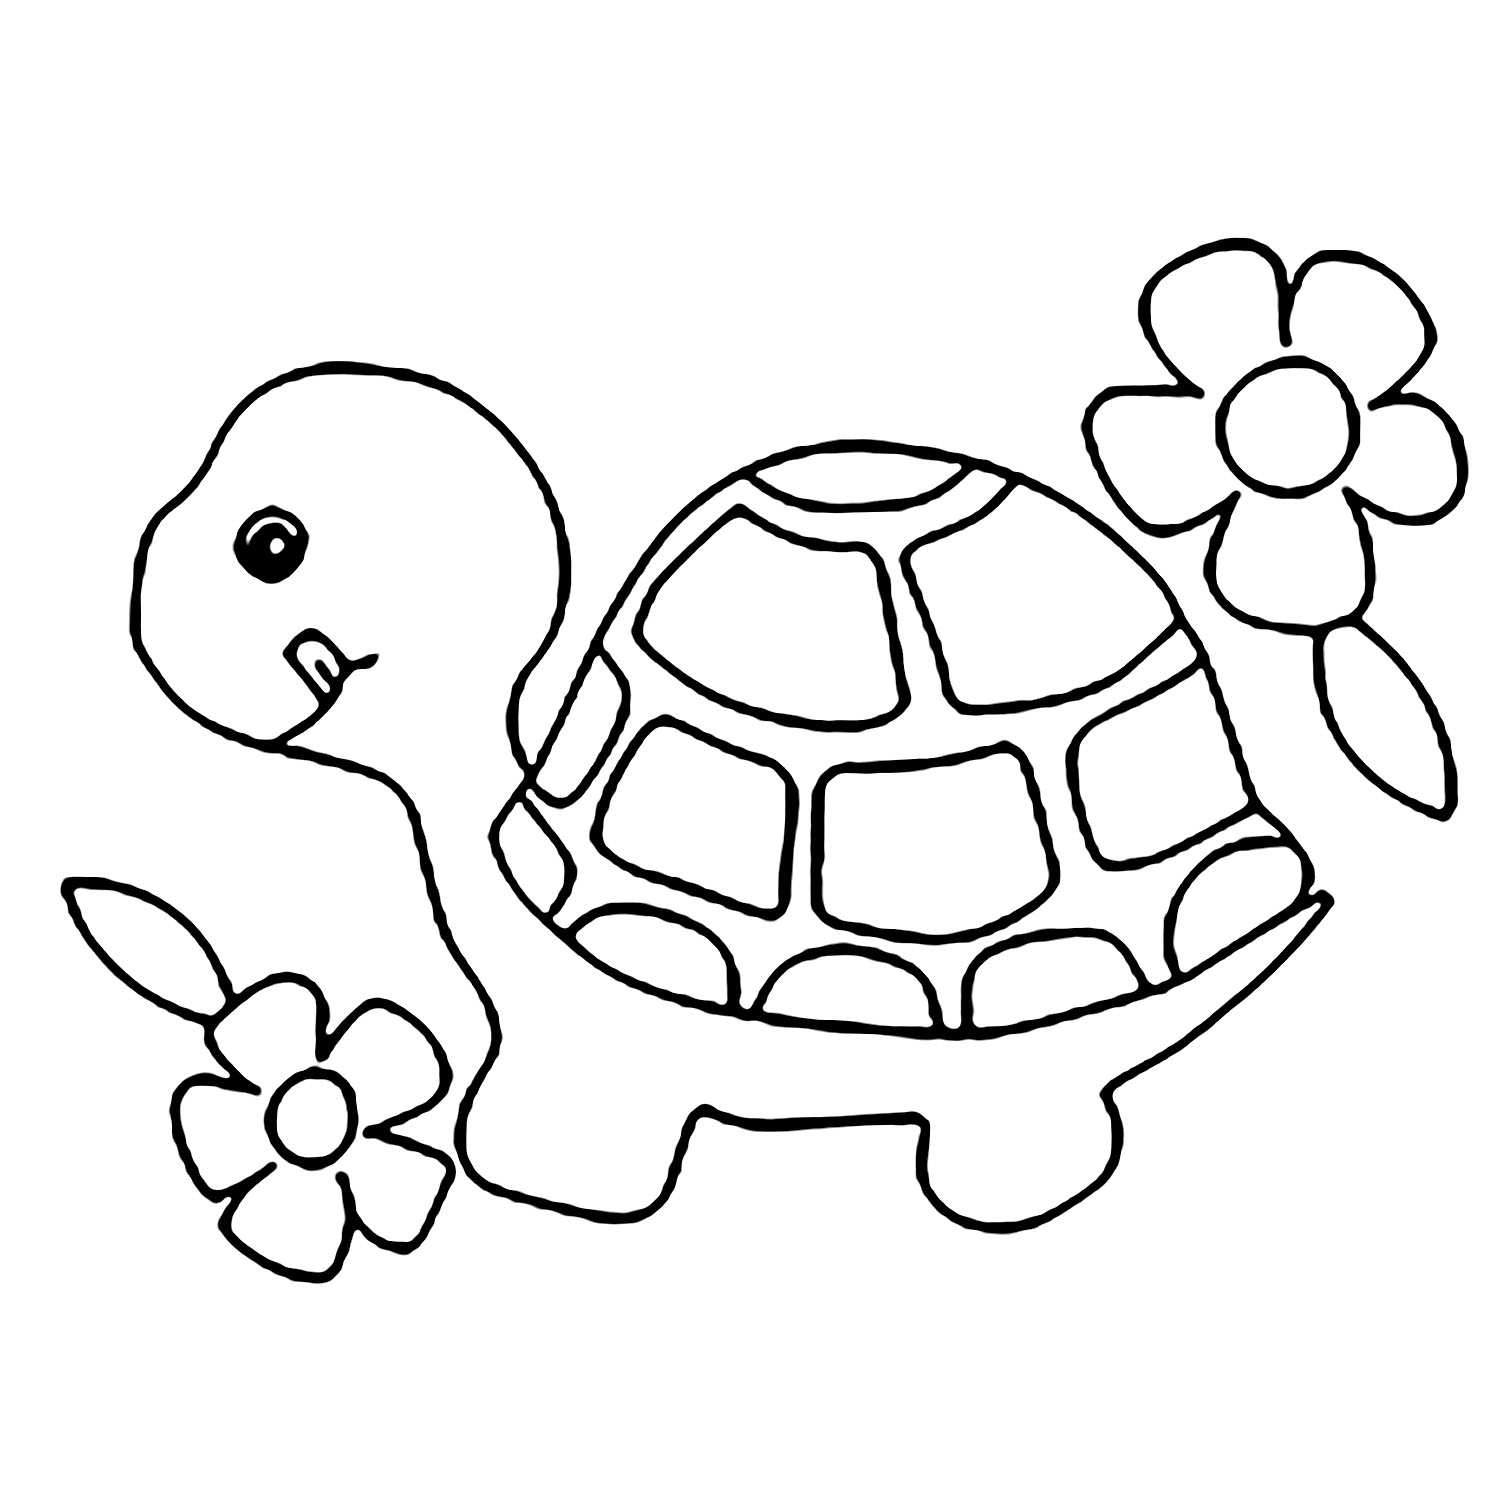 coloring picture turtle free printable turtle coloring pages for kids turtle picture coloring